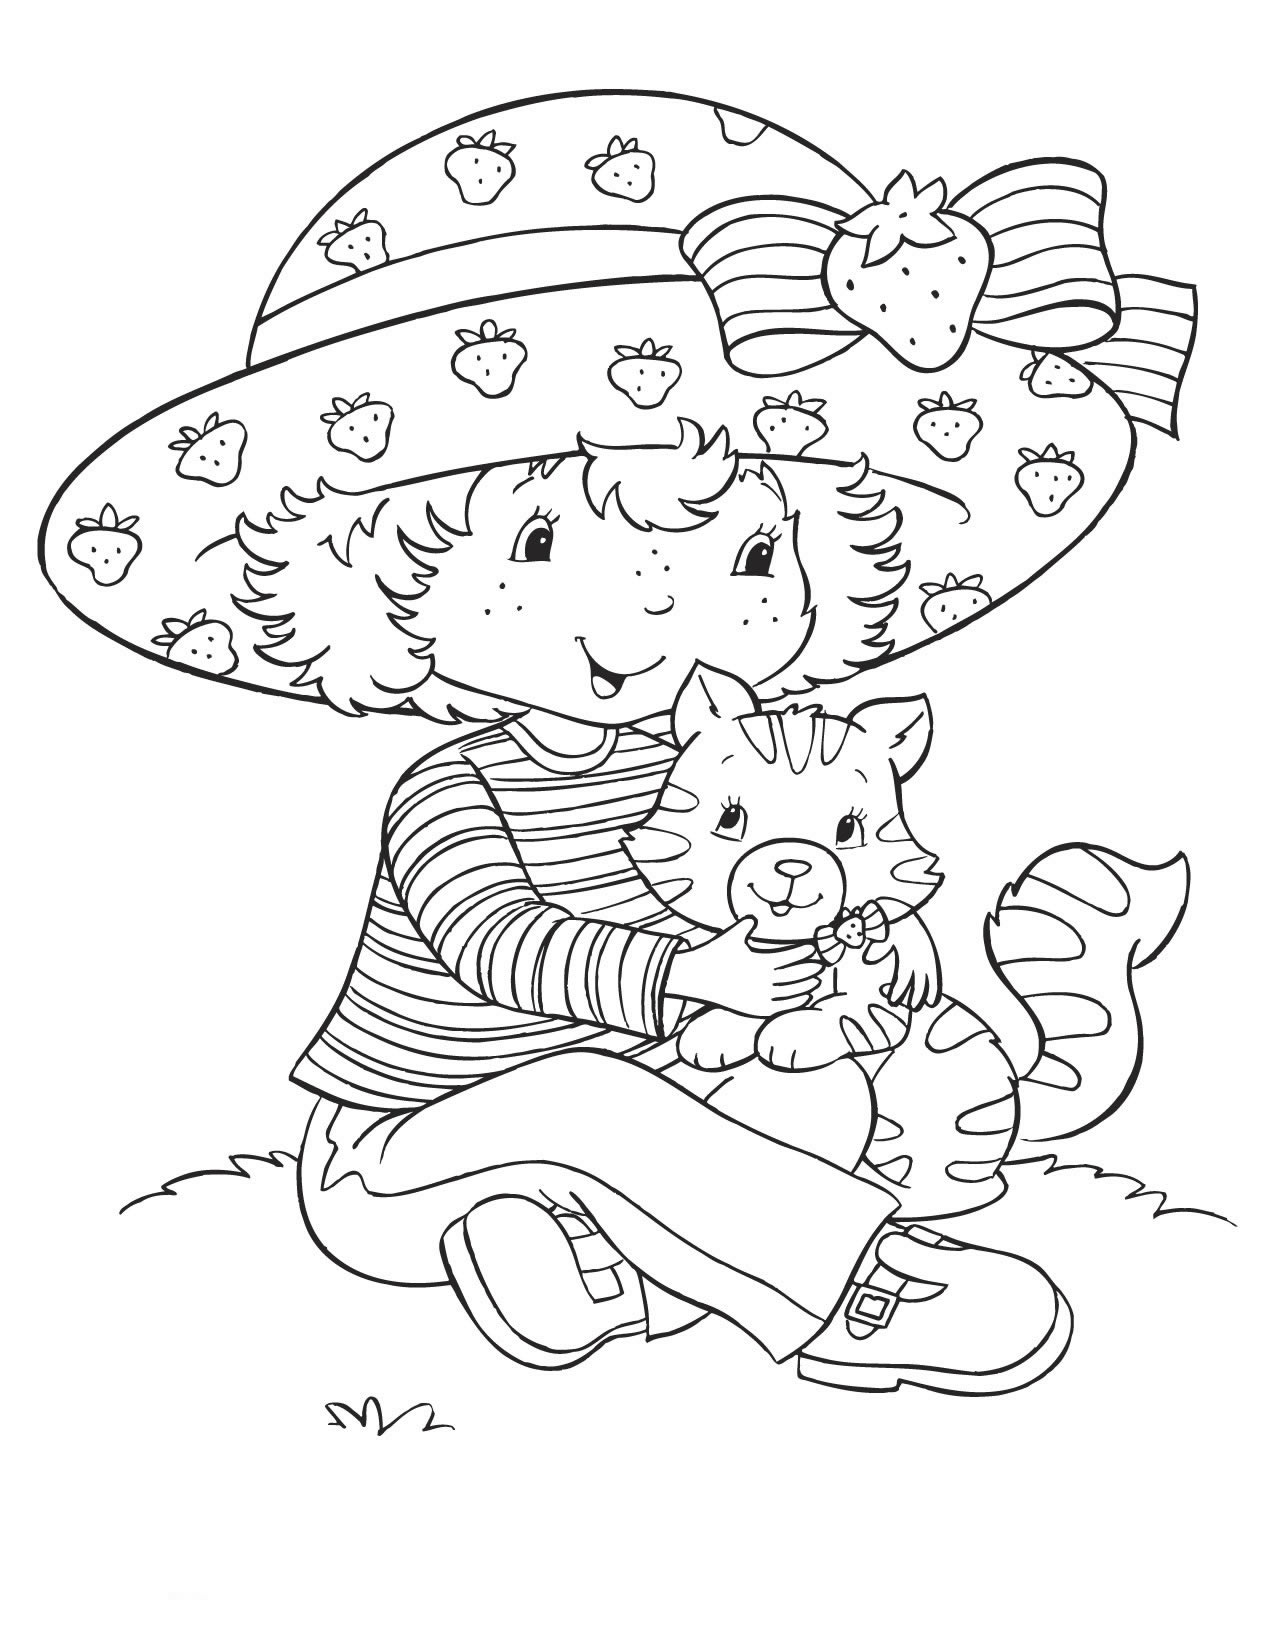 strawberry shortcake coloring pages free - photo#35